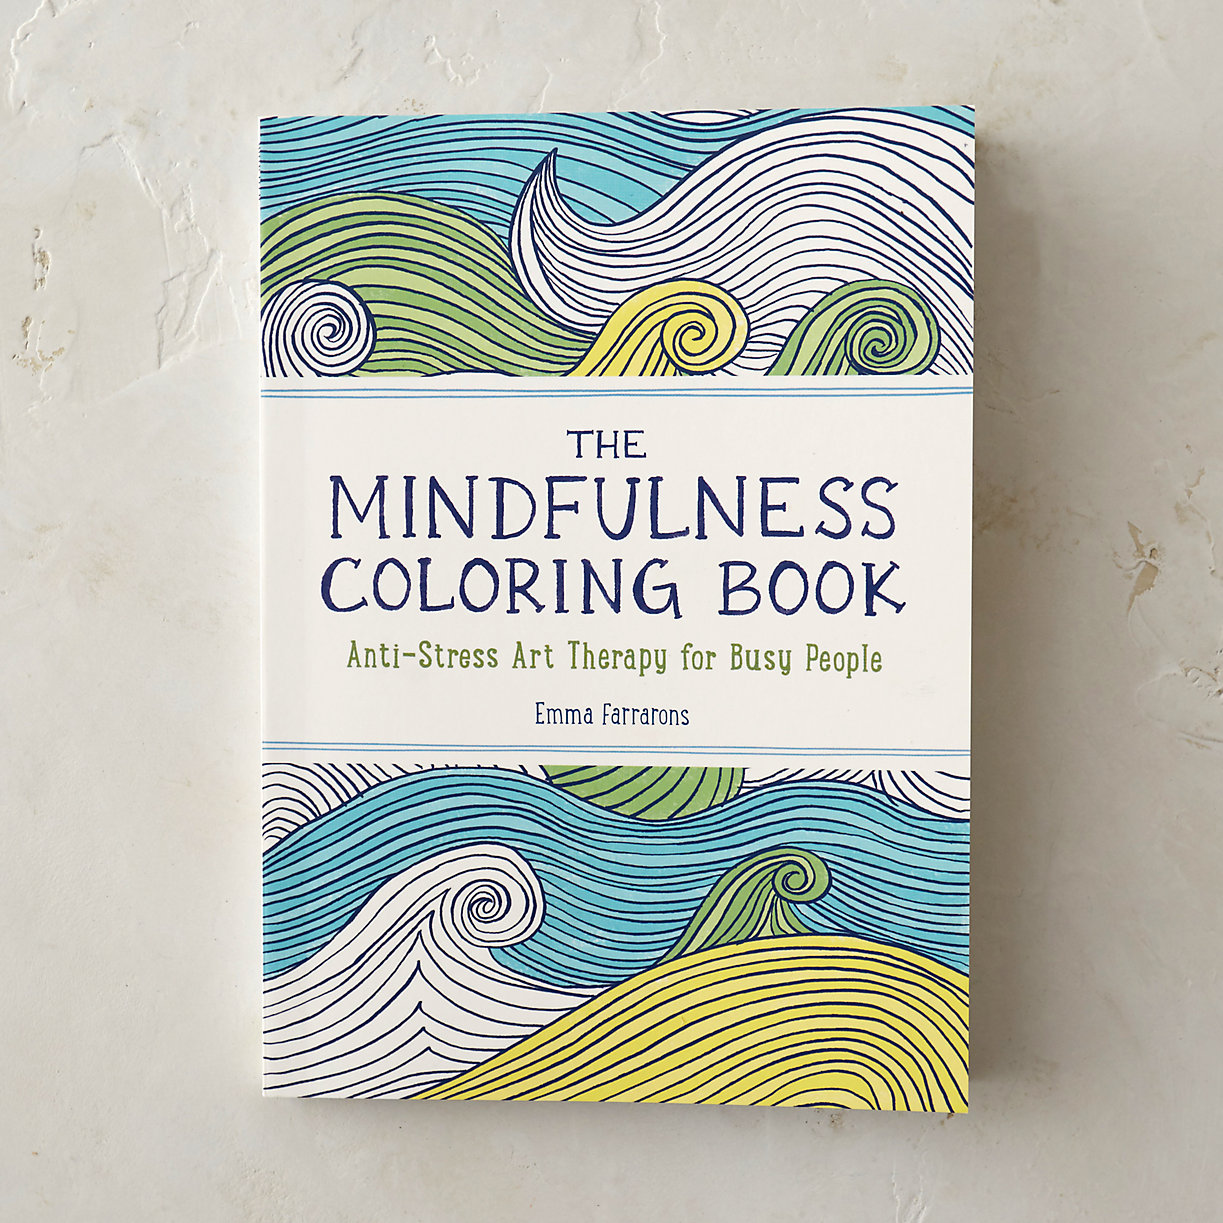 Mindfulness coloring book - The Mindfulness Coloring Book Loading Zoom